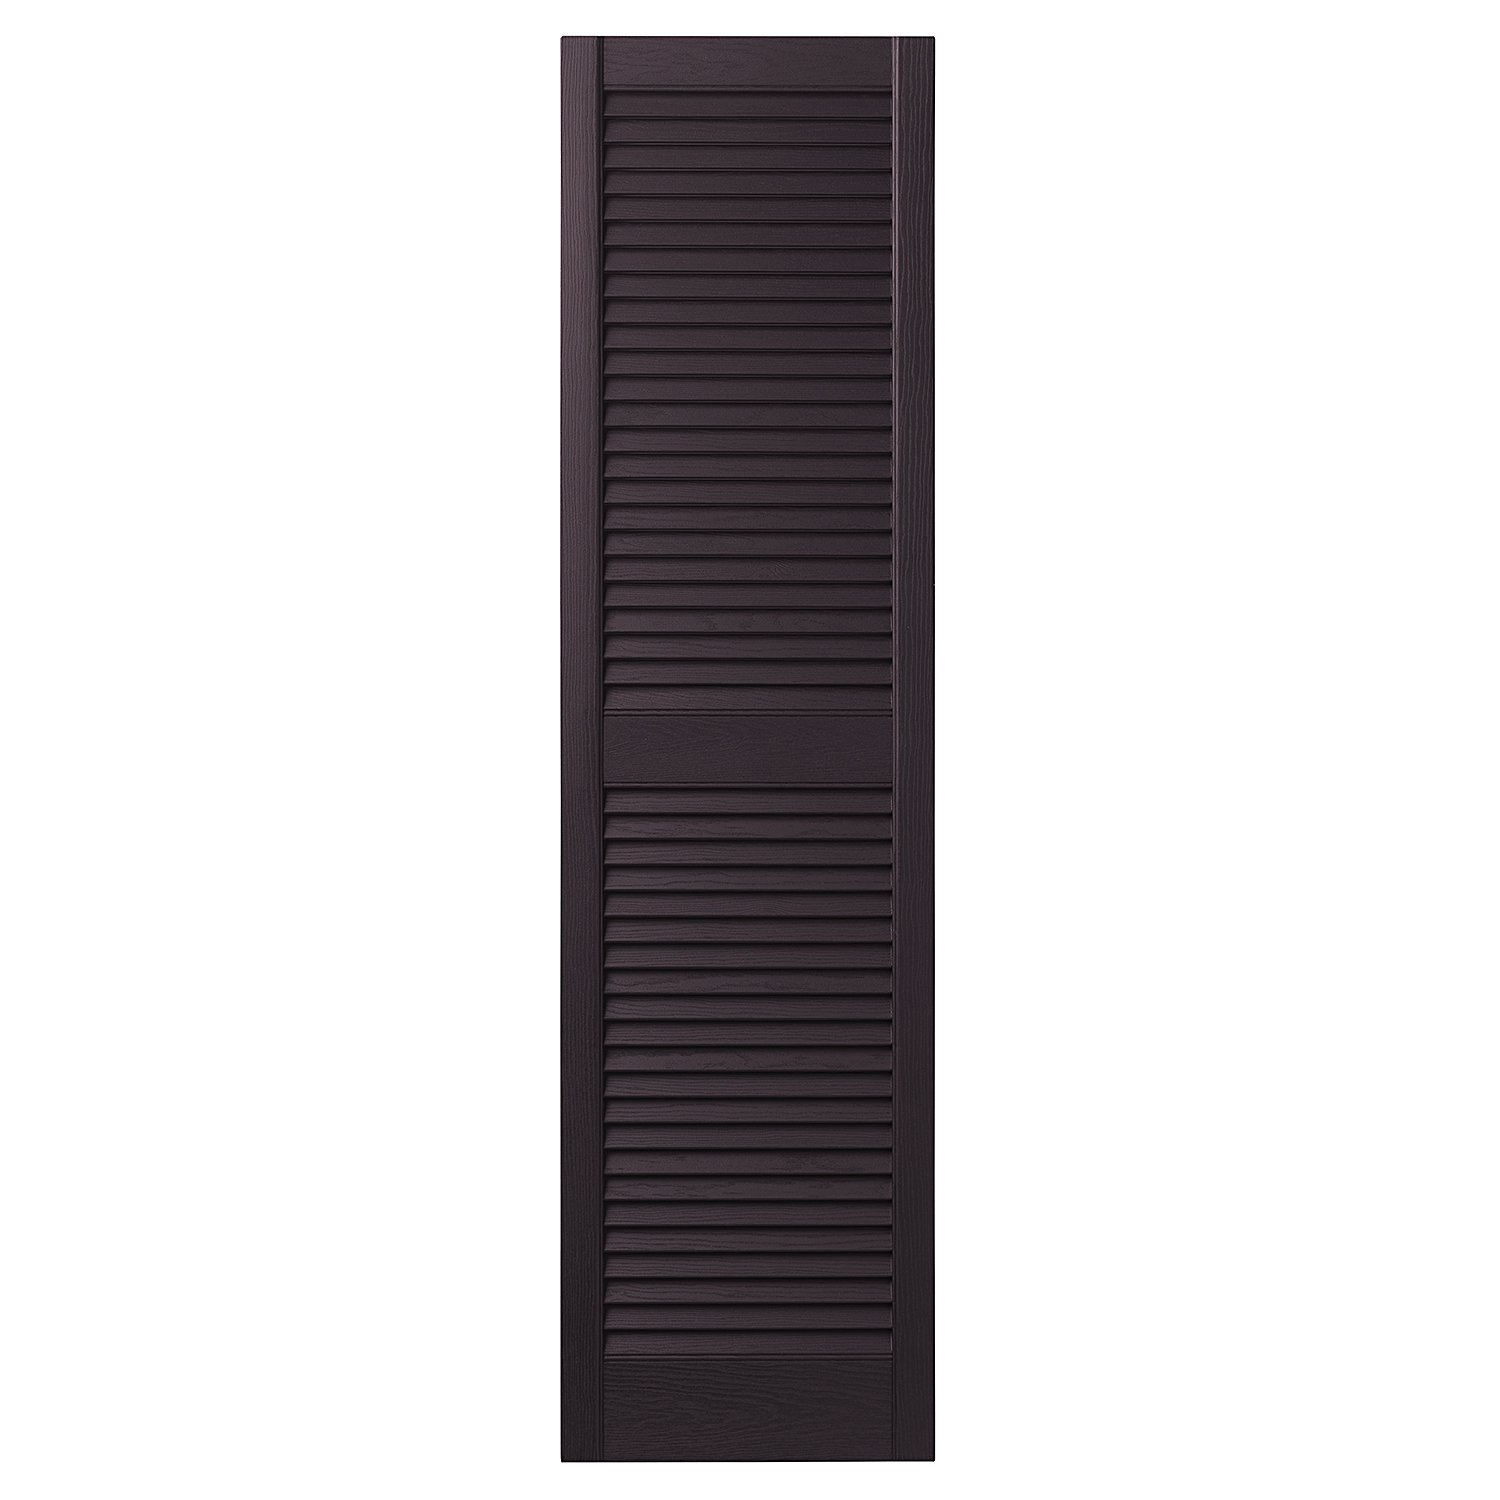 Ply Gem Shutters and Accents VINLV1547 IJ Louvered Shutter, 15'', Dark Berry by Ply Gem Shutters and Accents